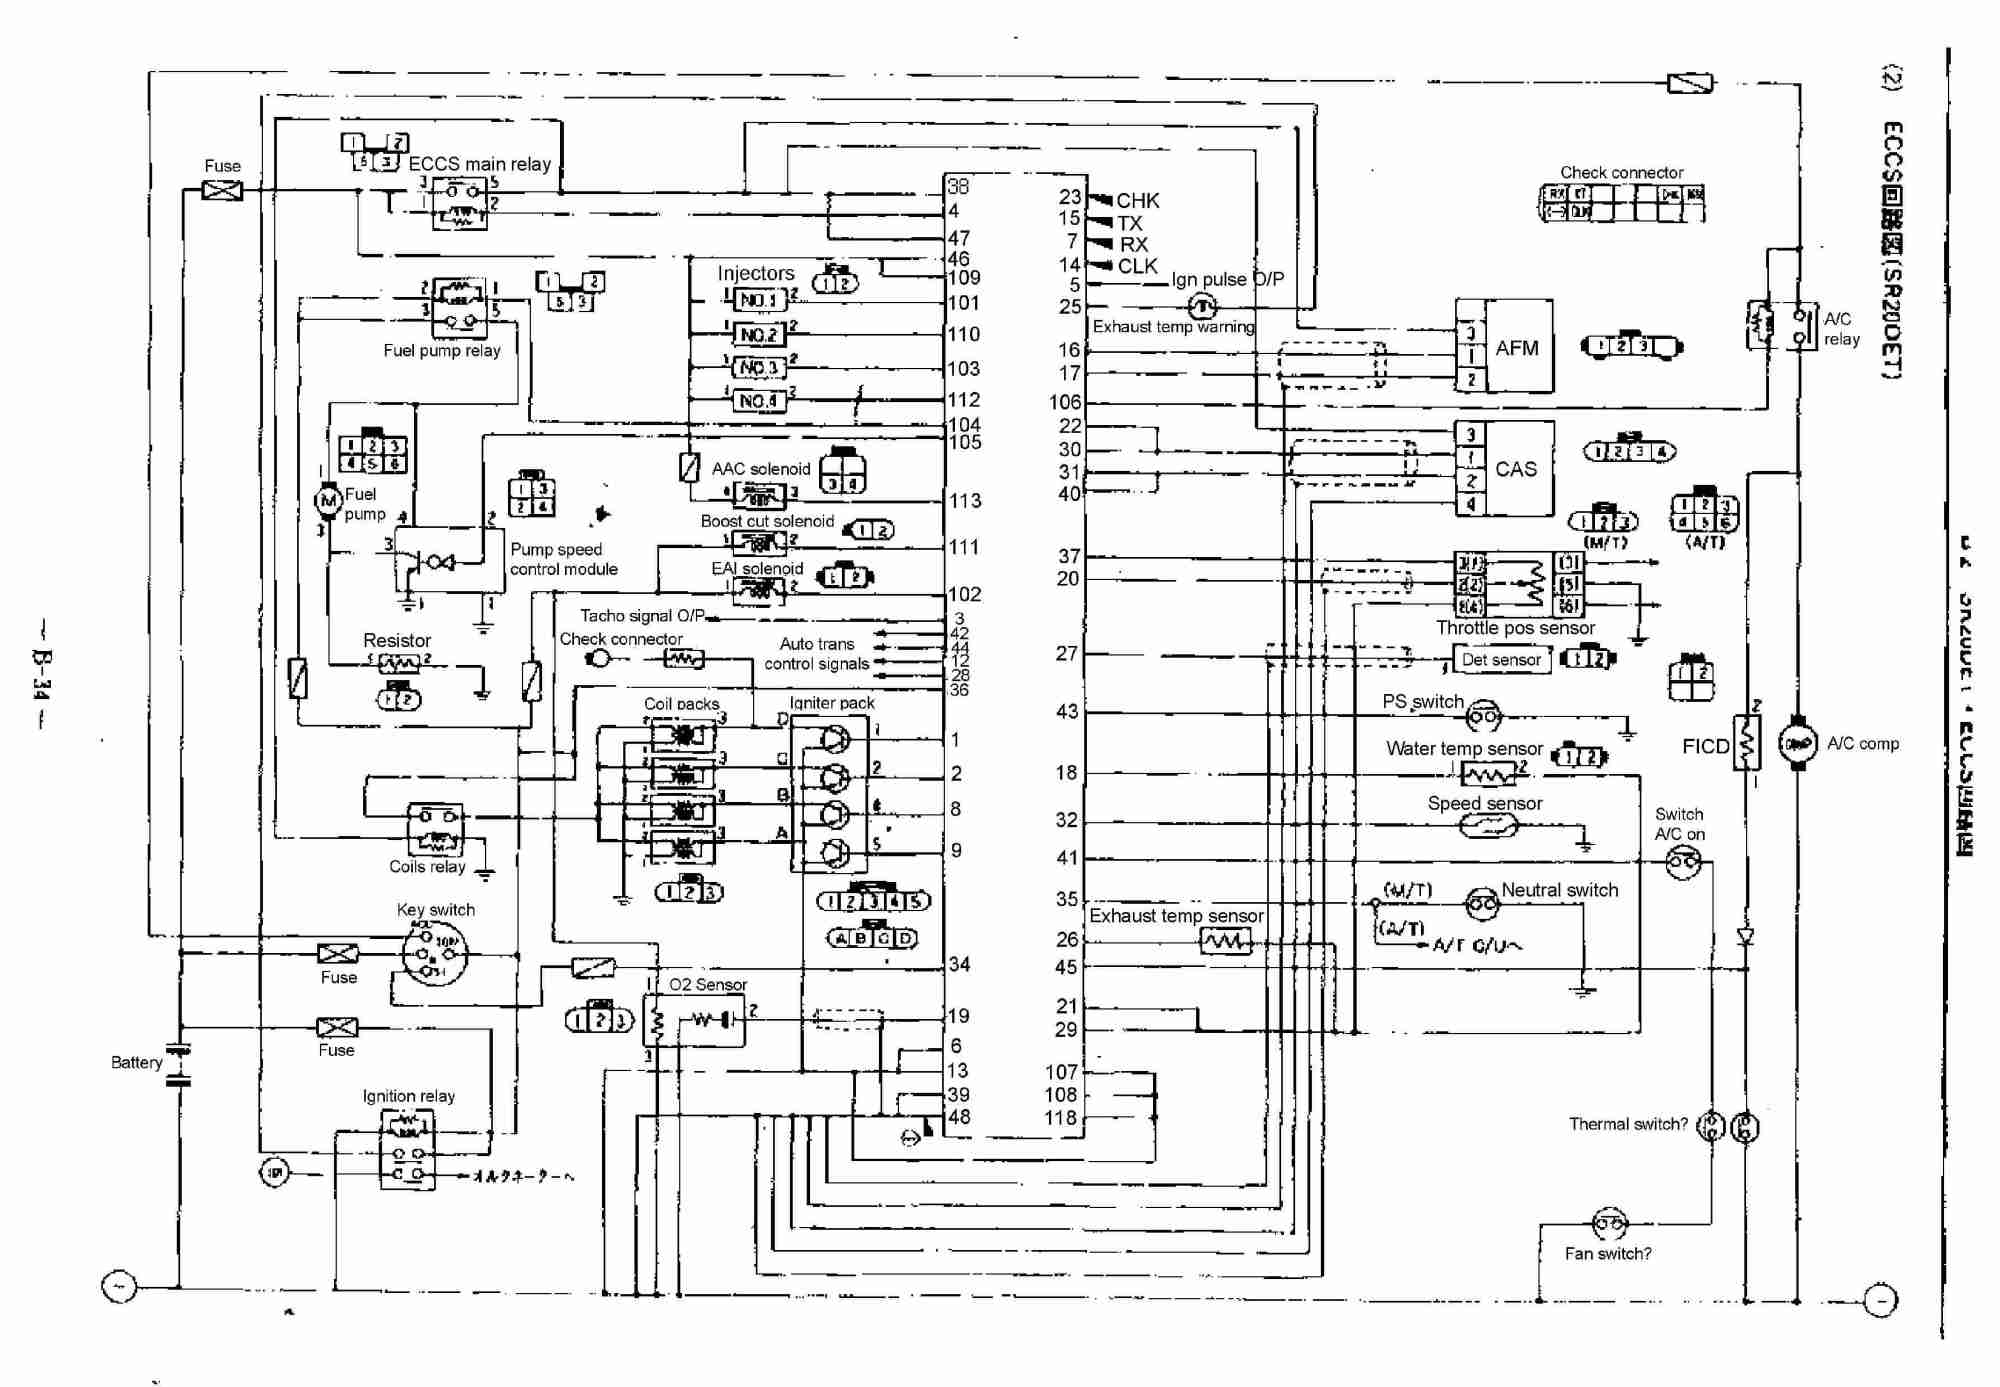 hight resolution of m38 jeep wiring diagram wiring diagramm38 wiring diagram ifq awosurk de u2022jeep parts m38a1